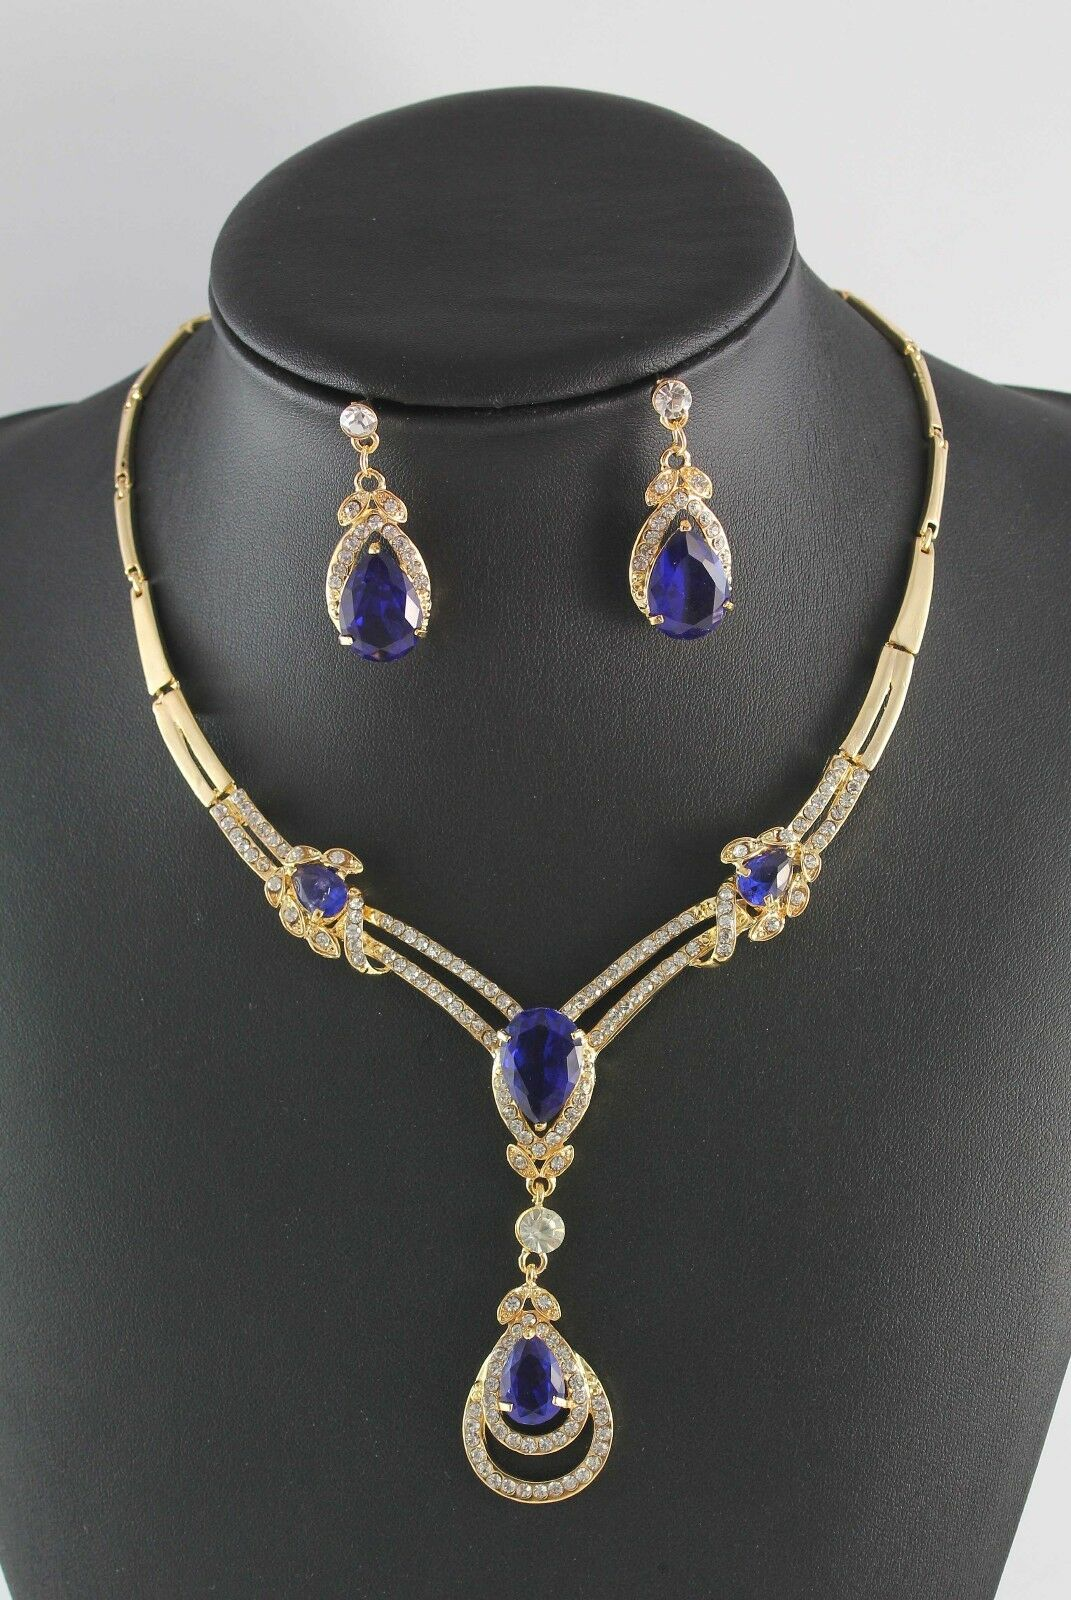 sapphire necklace and earrings set yellow gold plated blue sapphire topaz necklace 1542